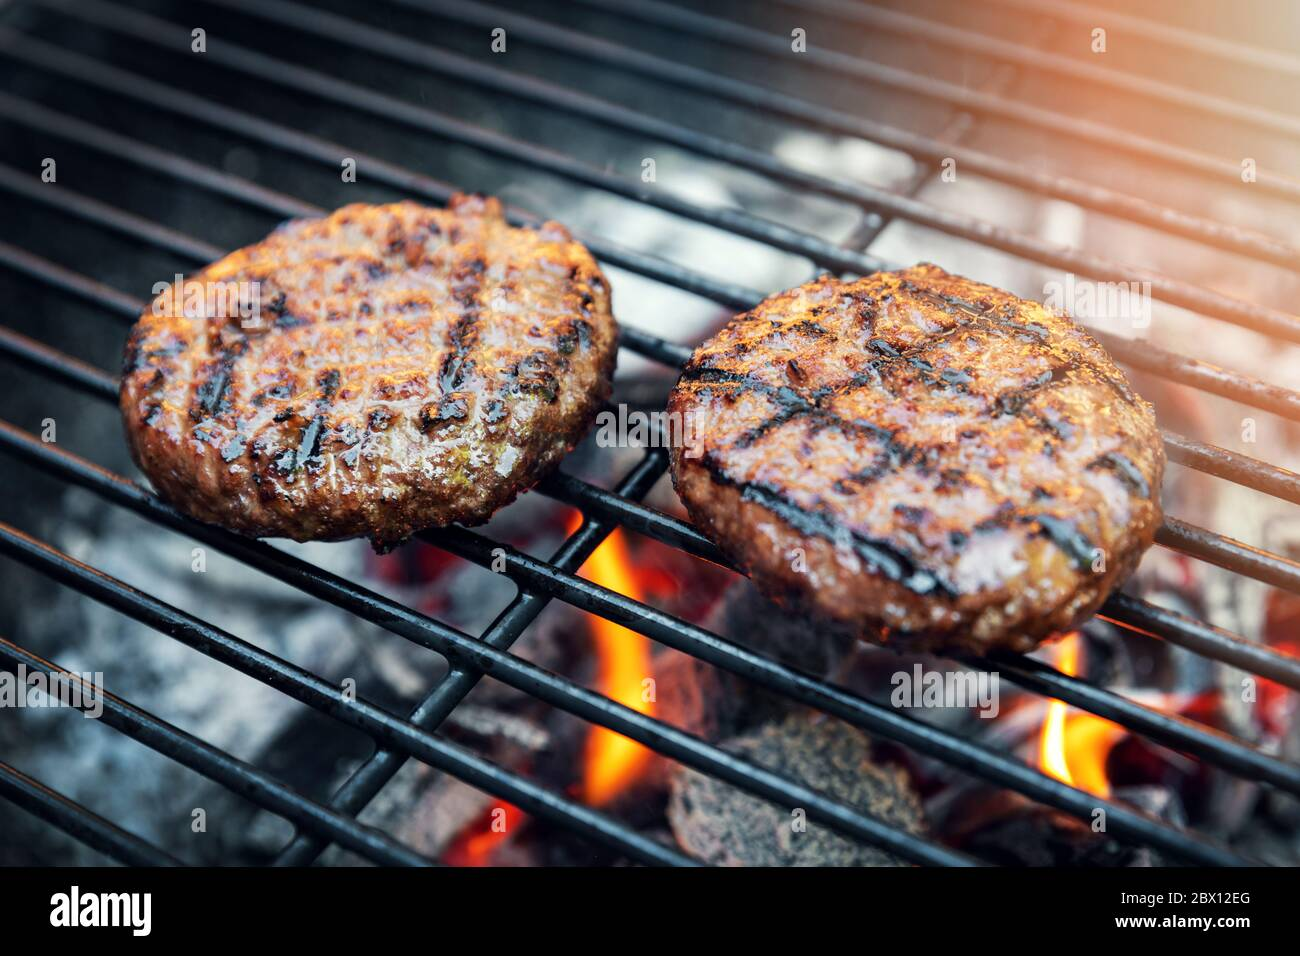 Beef Burger Meat Cooking On Charcoal Grill Outdoors Stock Photo Alamy